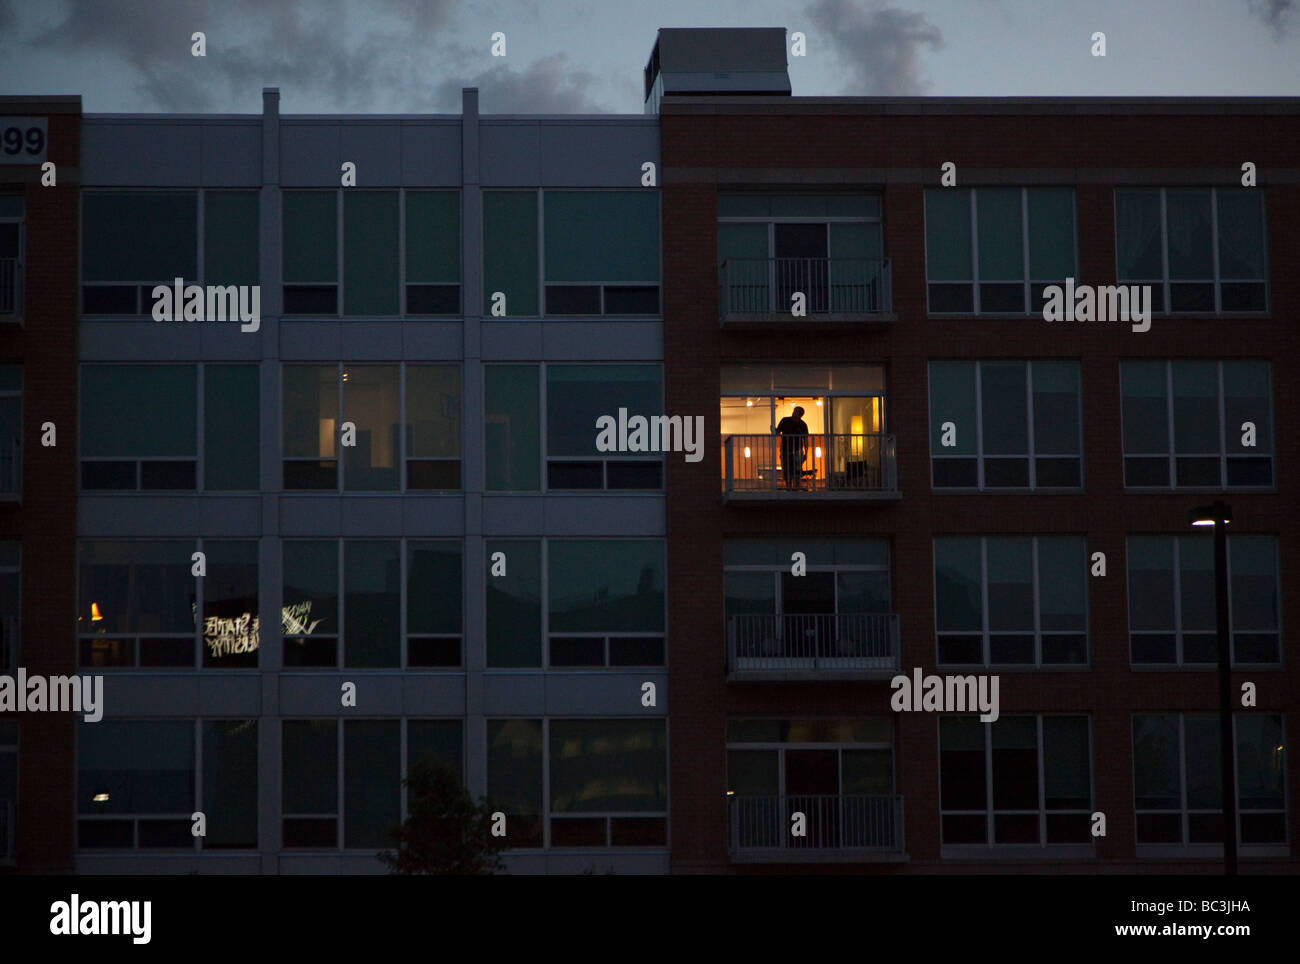 Detroit Michigan A man on the balcony of one lighted unit at The Ellington a new loft development - Stock Image